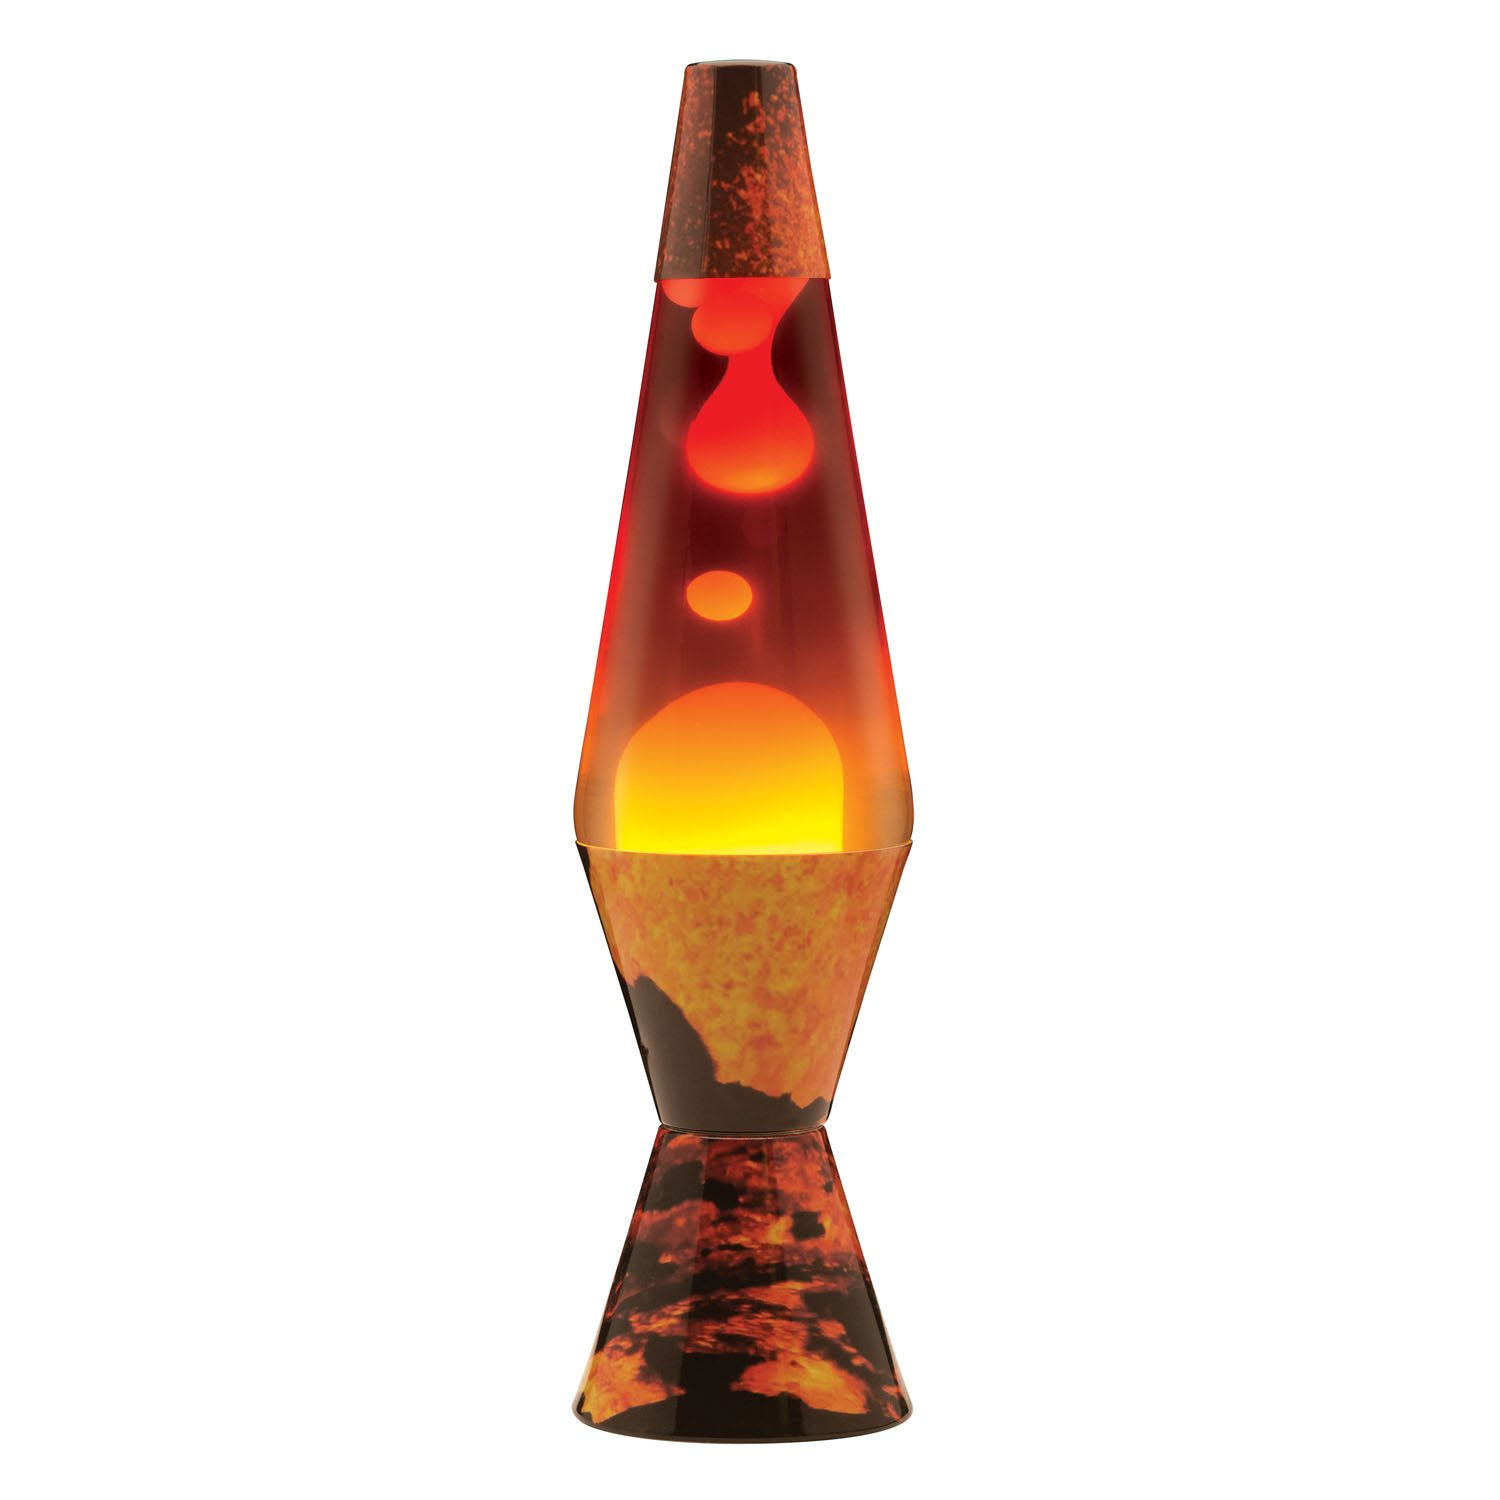 Schylling 2149 Lava The Original Colormax Lamp with Volcano Decal Base, 4.0'' x 4.0'' x 14.5'', Color Max Volcano Base/White Wax/Clear Liquid/Tri-Colored Globe